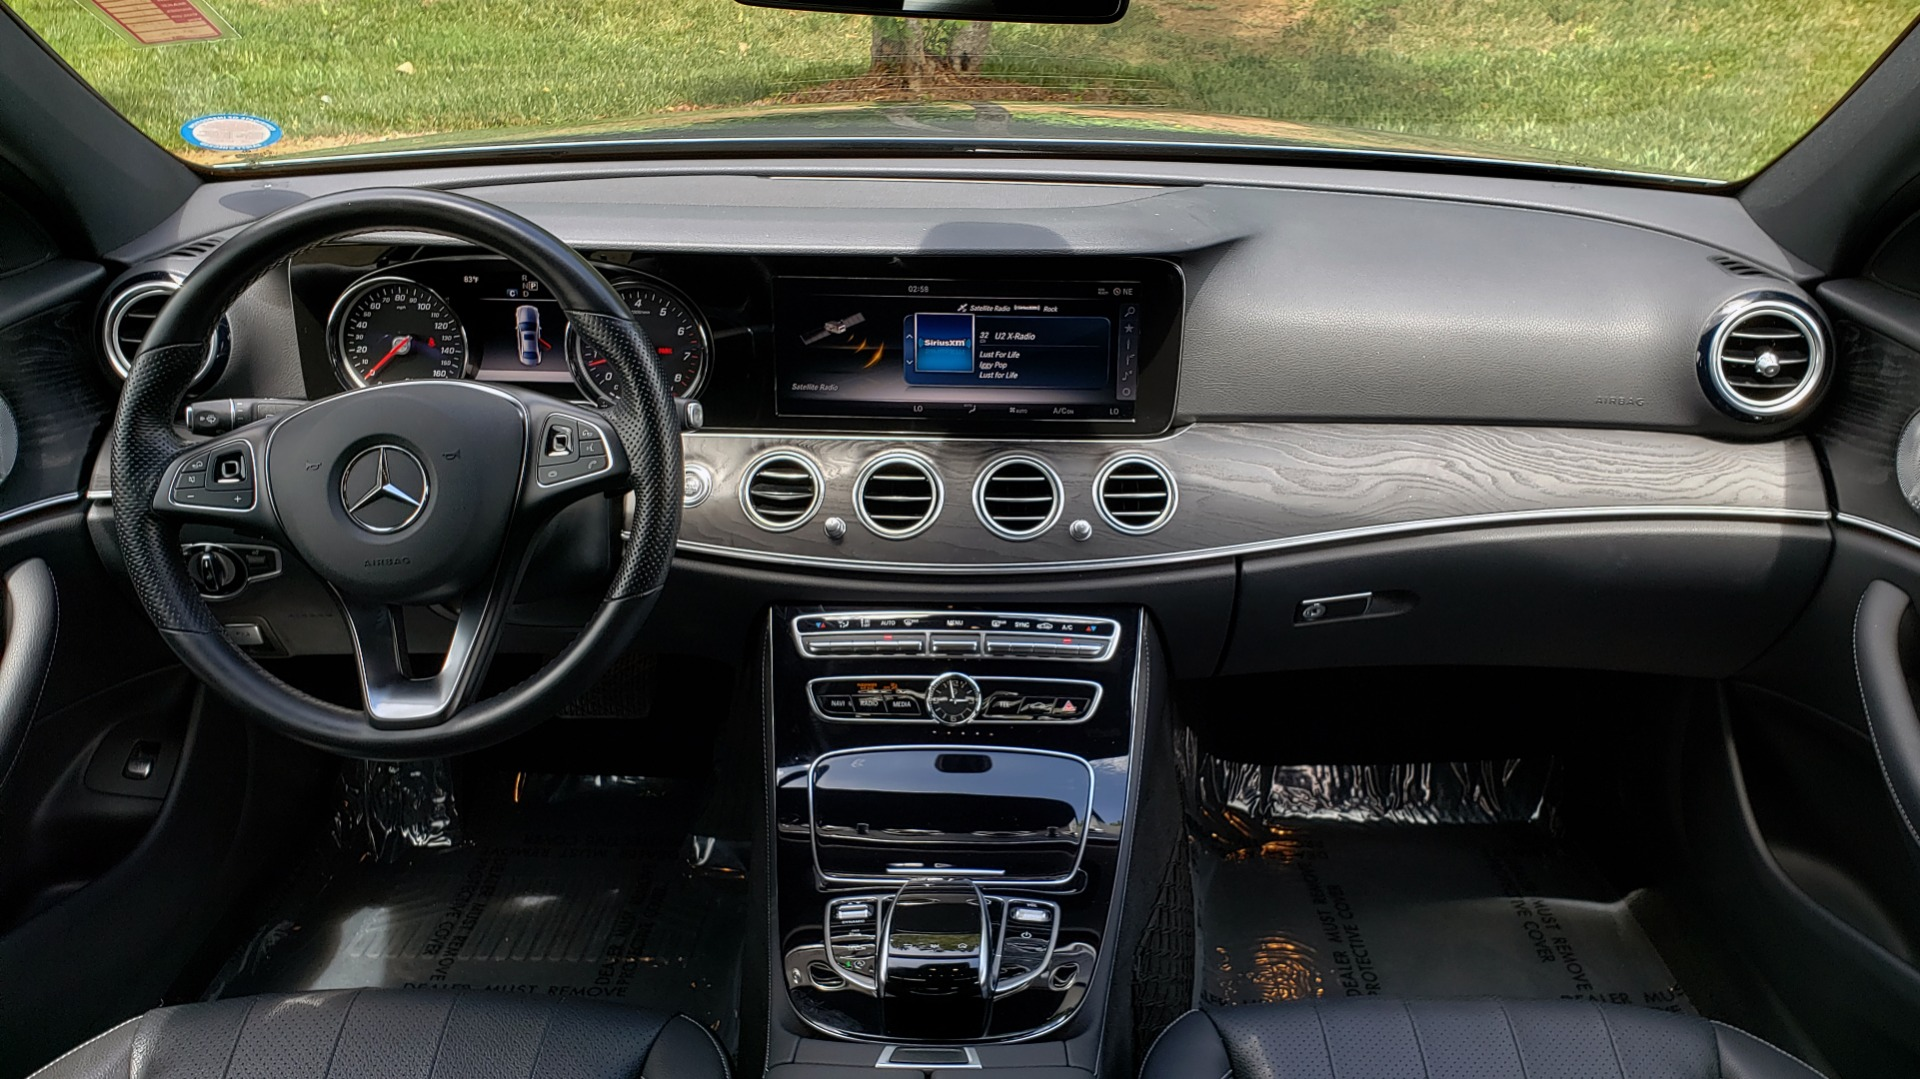 Used 2017 Mercedes-Benz E-CLASS E 300 SPORT 4MATIC / PREM PKG / NAV / SUNROOF / BURMESTER SND / REARVIEW for sale Sold at Formula Imports in Charlotte NC 28227 71